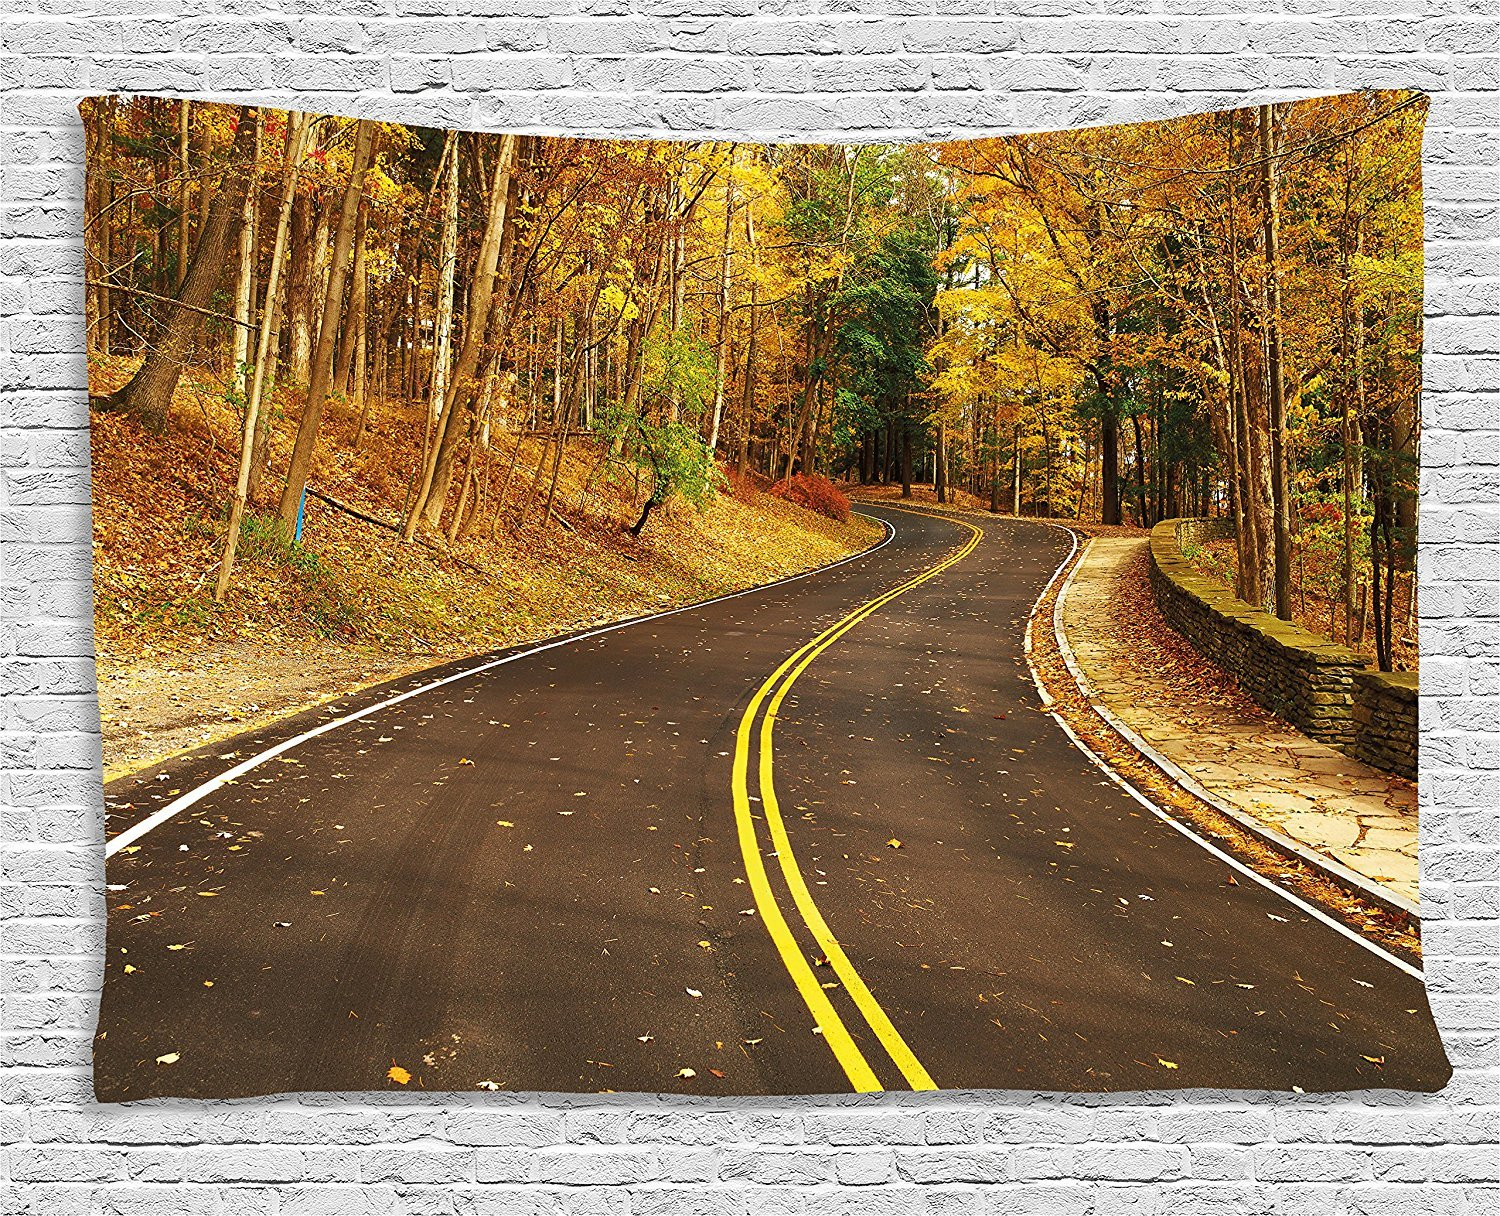 Fall Decor Tapestry, Autumn Scene with Curvy Road in Forest at Letchworth State Park New York USA, Wall Hanging for Bedroom Living Room Dorm, 80 W X 60 L Inches, Multicolor by asddcdfdd